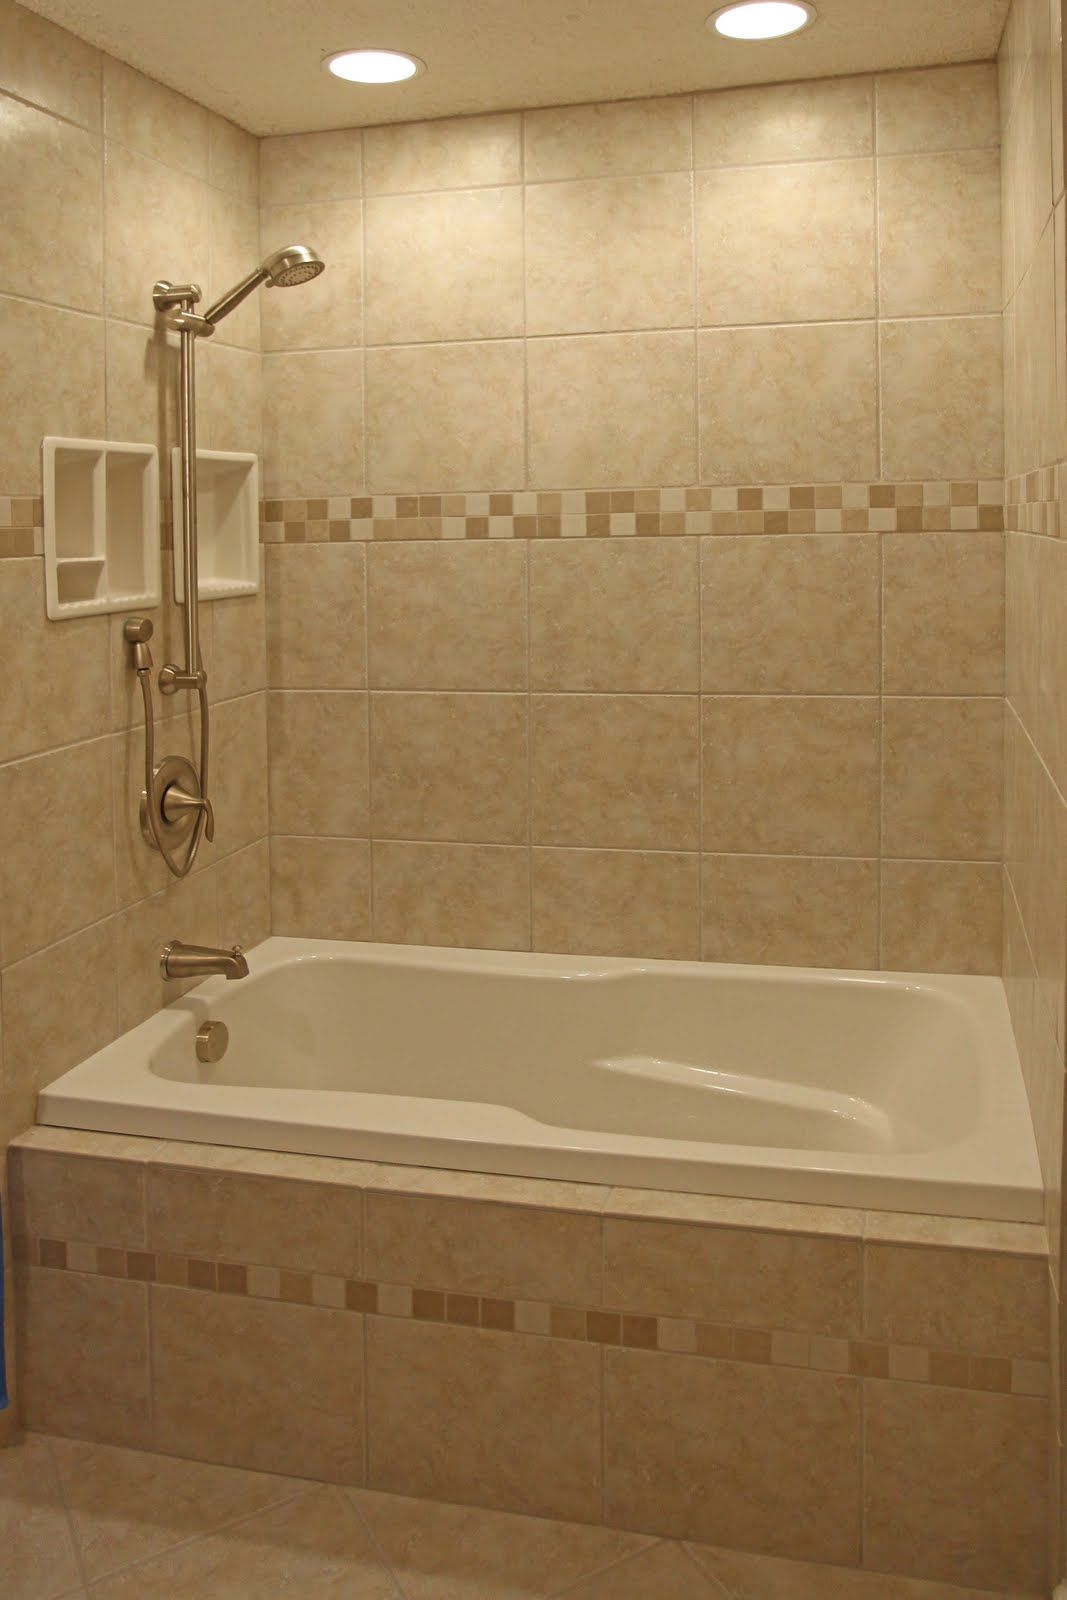 Bathroom Tile Ideas For Shower Walls shower and bath remodel | bathroom shower design ideas » ceramic